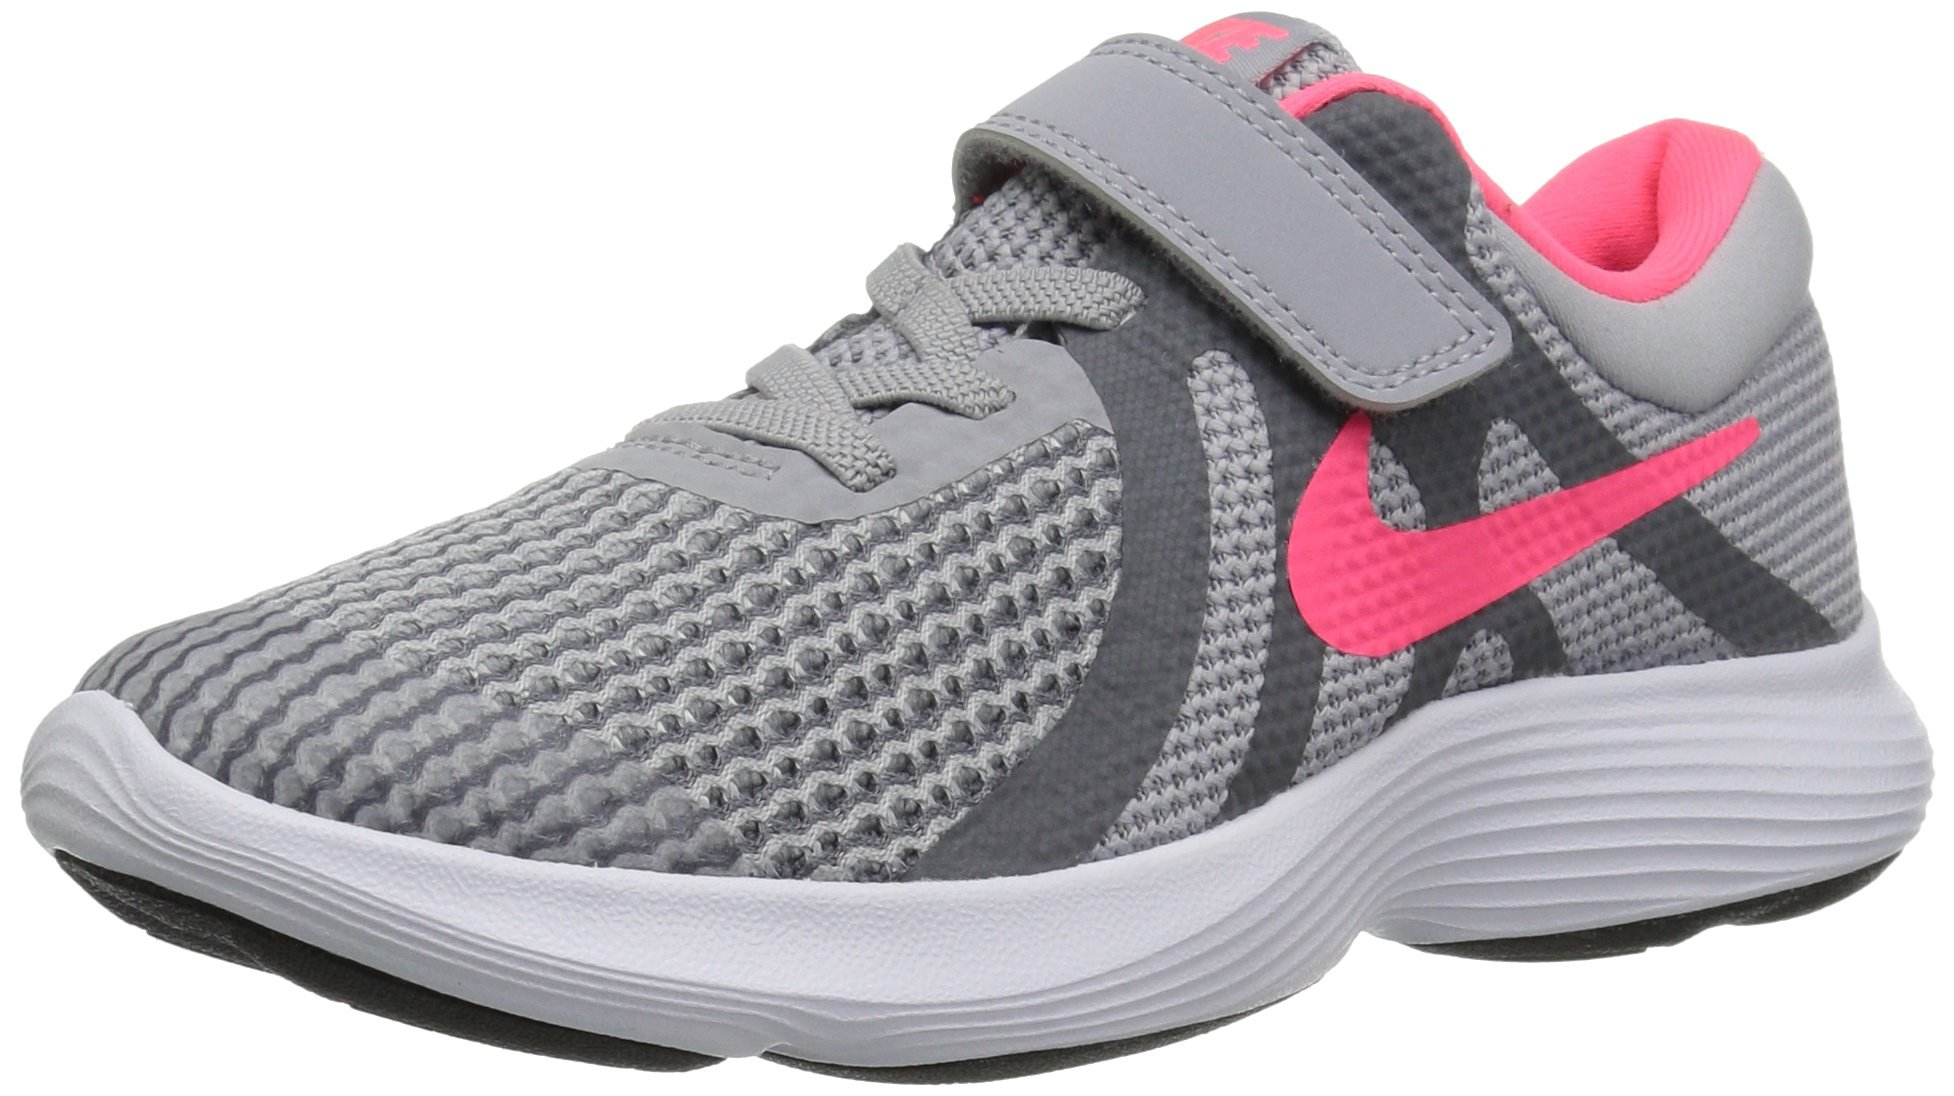 Nike Girls' Revolution 4 (PSV) Running Shoe, Wolf Racer Pink-Cool Grey-White, 10.5C Child US Little Kid by Nike